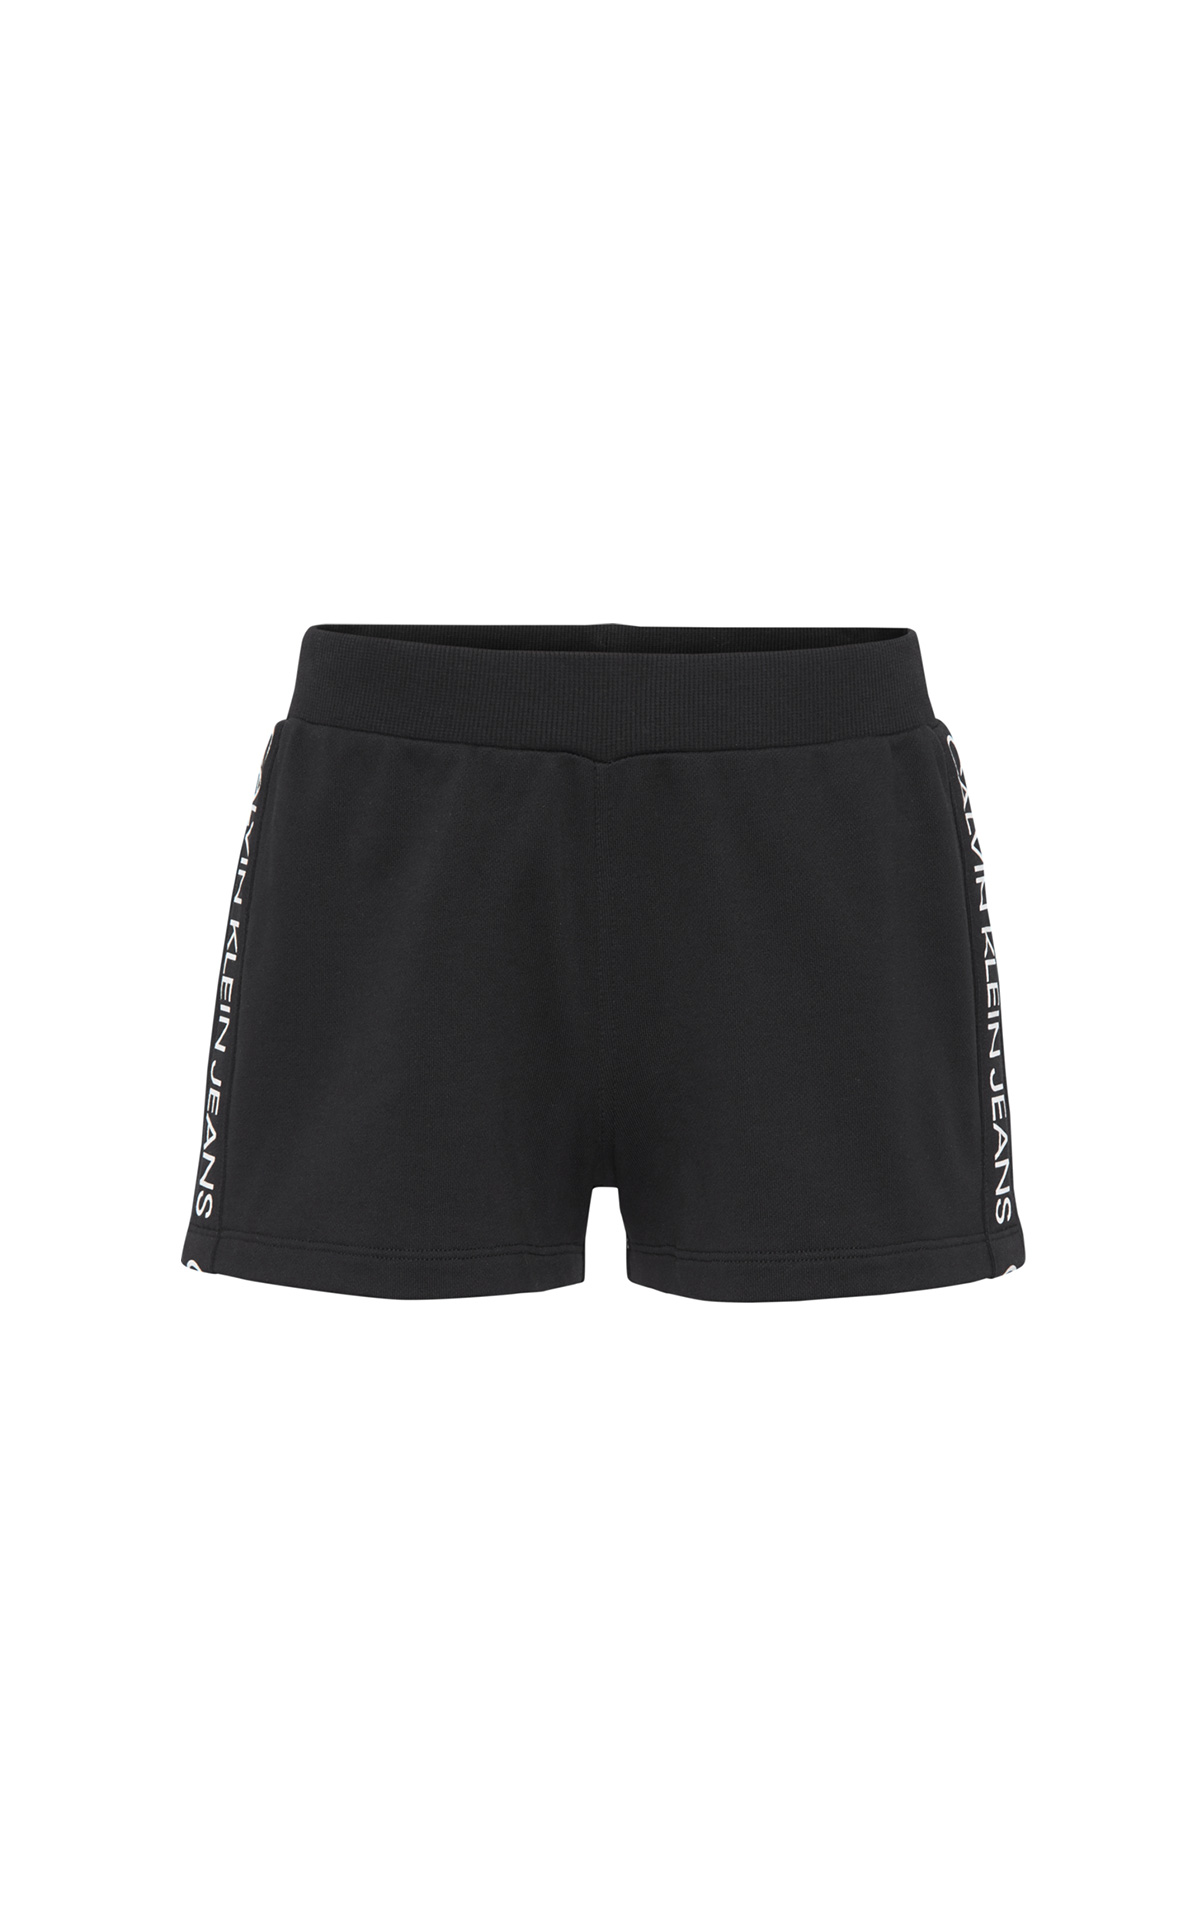 Calvin Klein shorts at The Bicester Village Shopping Collection